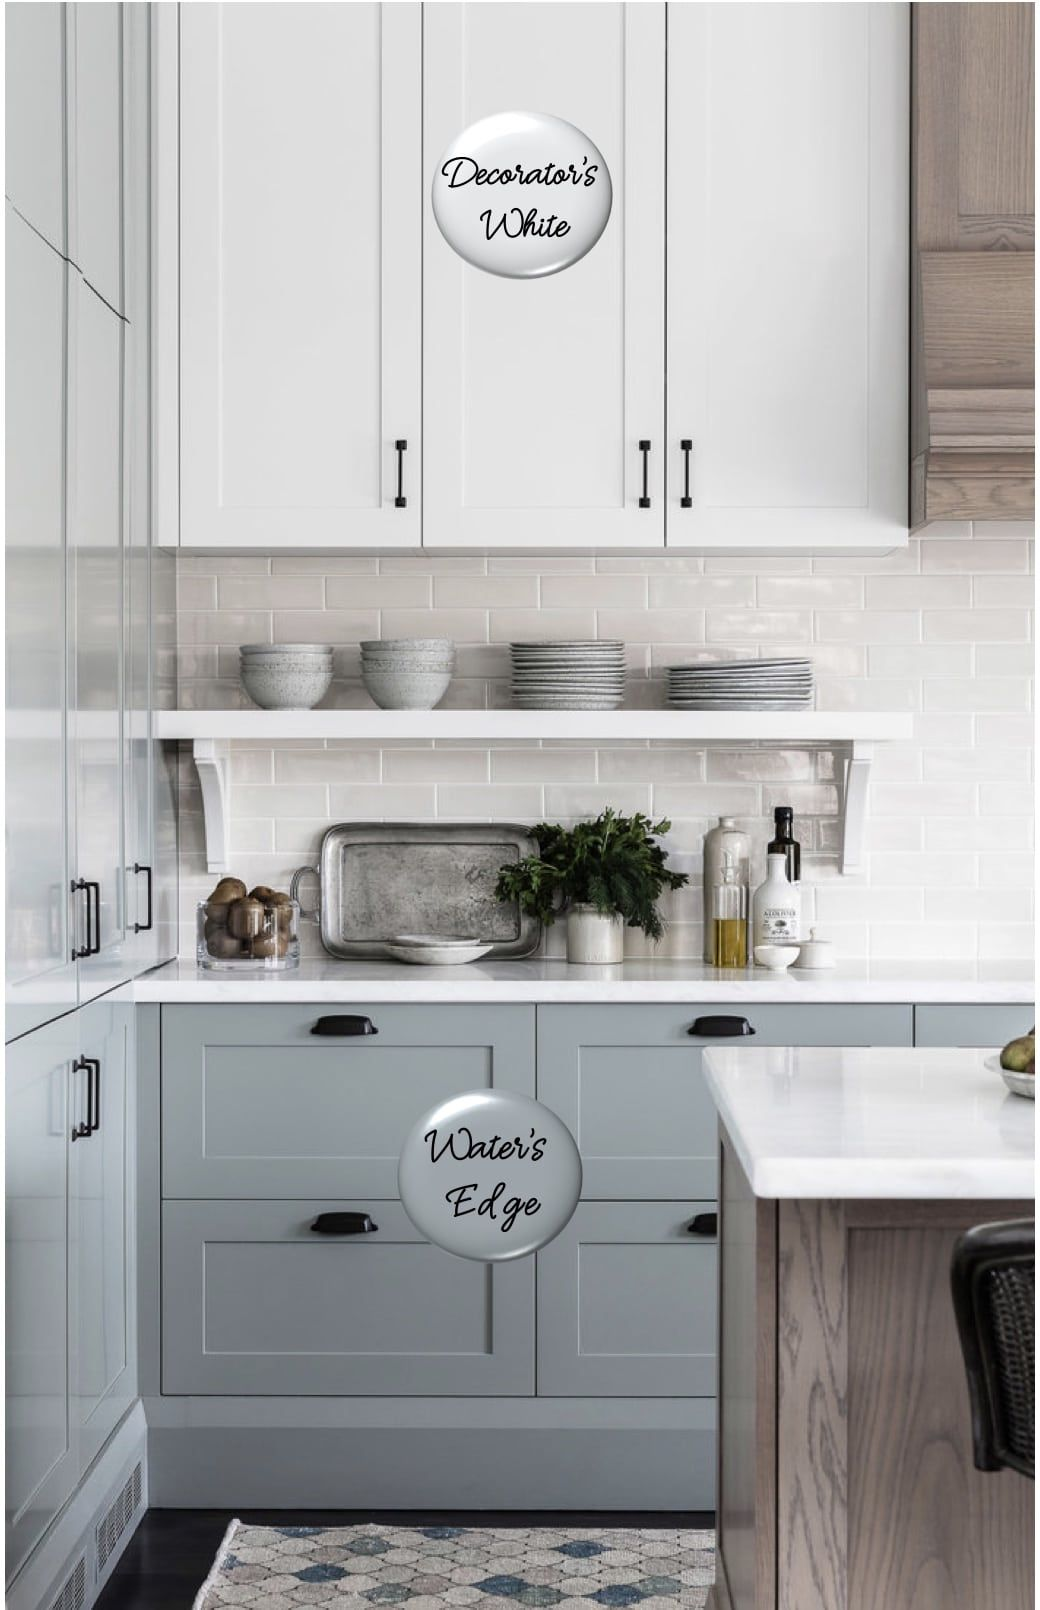 20 Cabinet Paint Color Combos For The Kitchen Kitchen Cabinets Color Combination Kitchen Cabinets Painted Kitchen Cabinets Colors